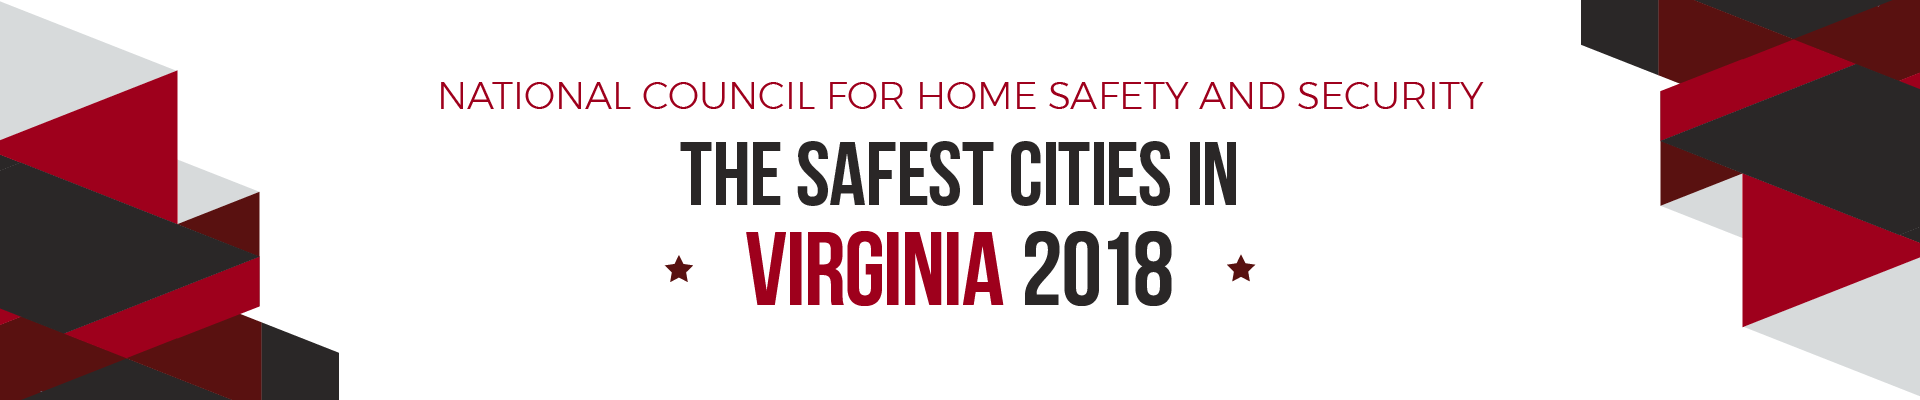 virginia safe cities 2018